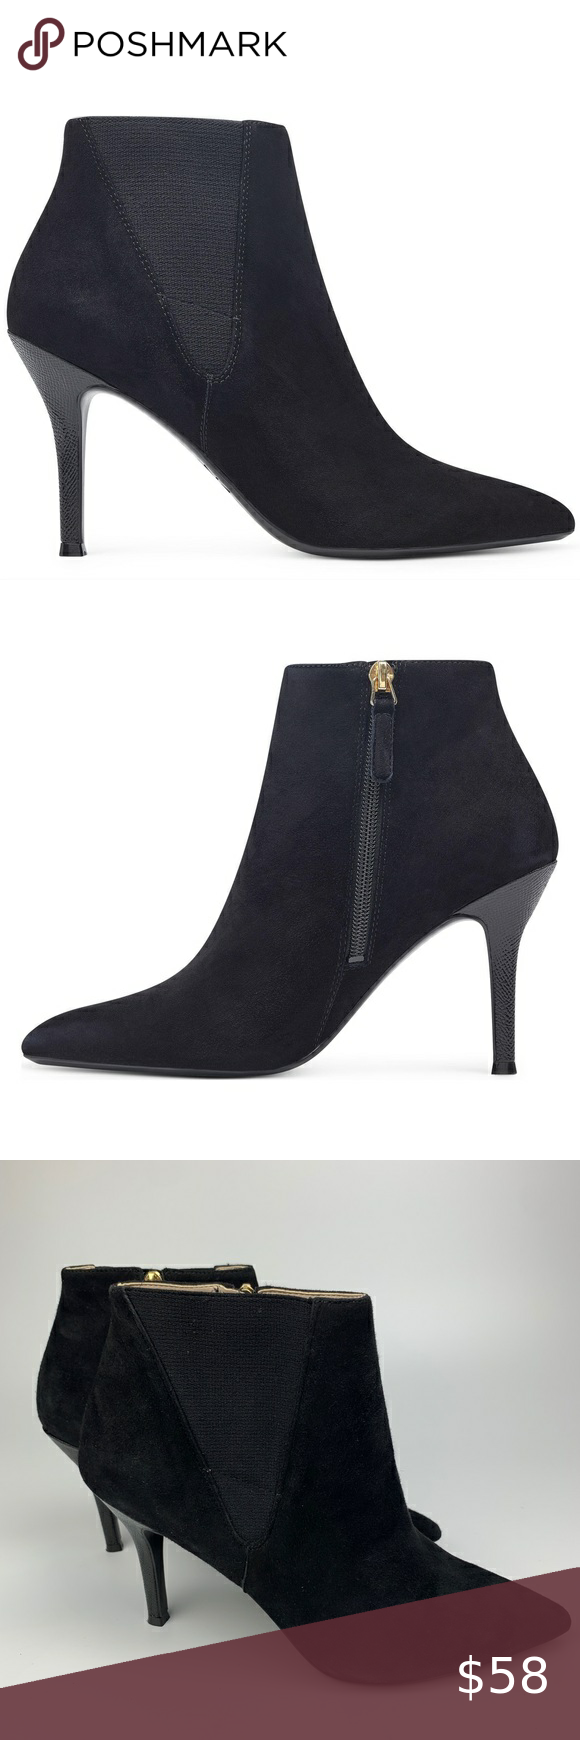 Pointed toe, Bootie boots, Ankle boots